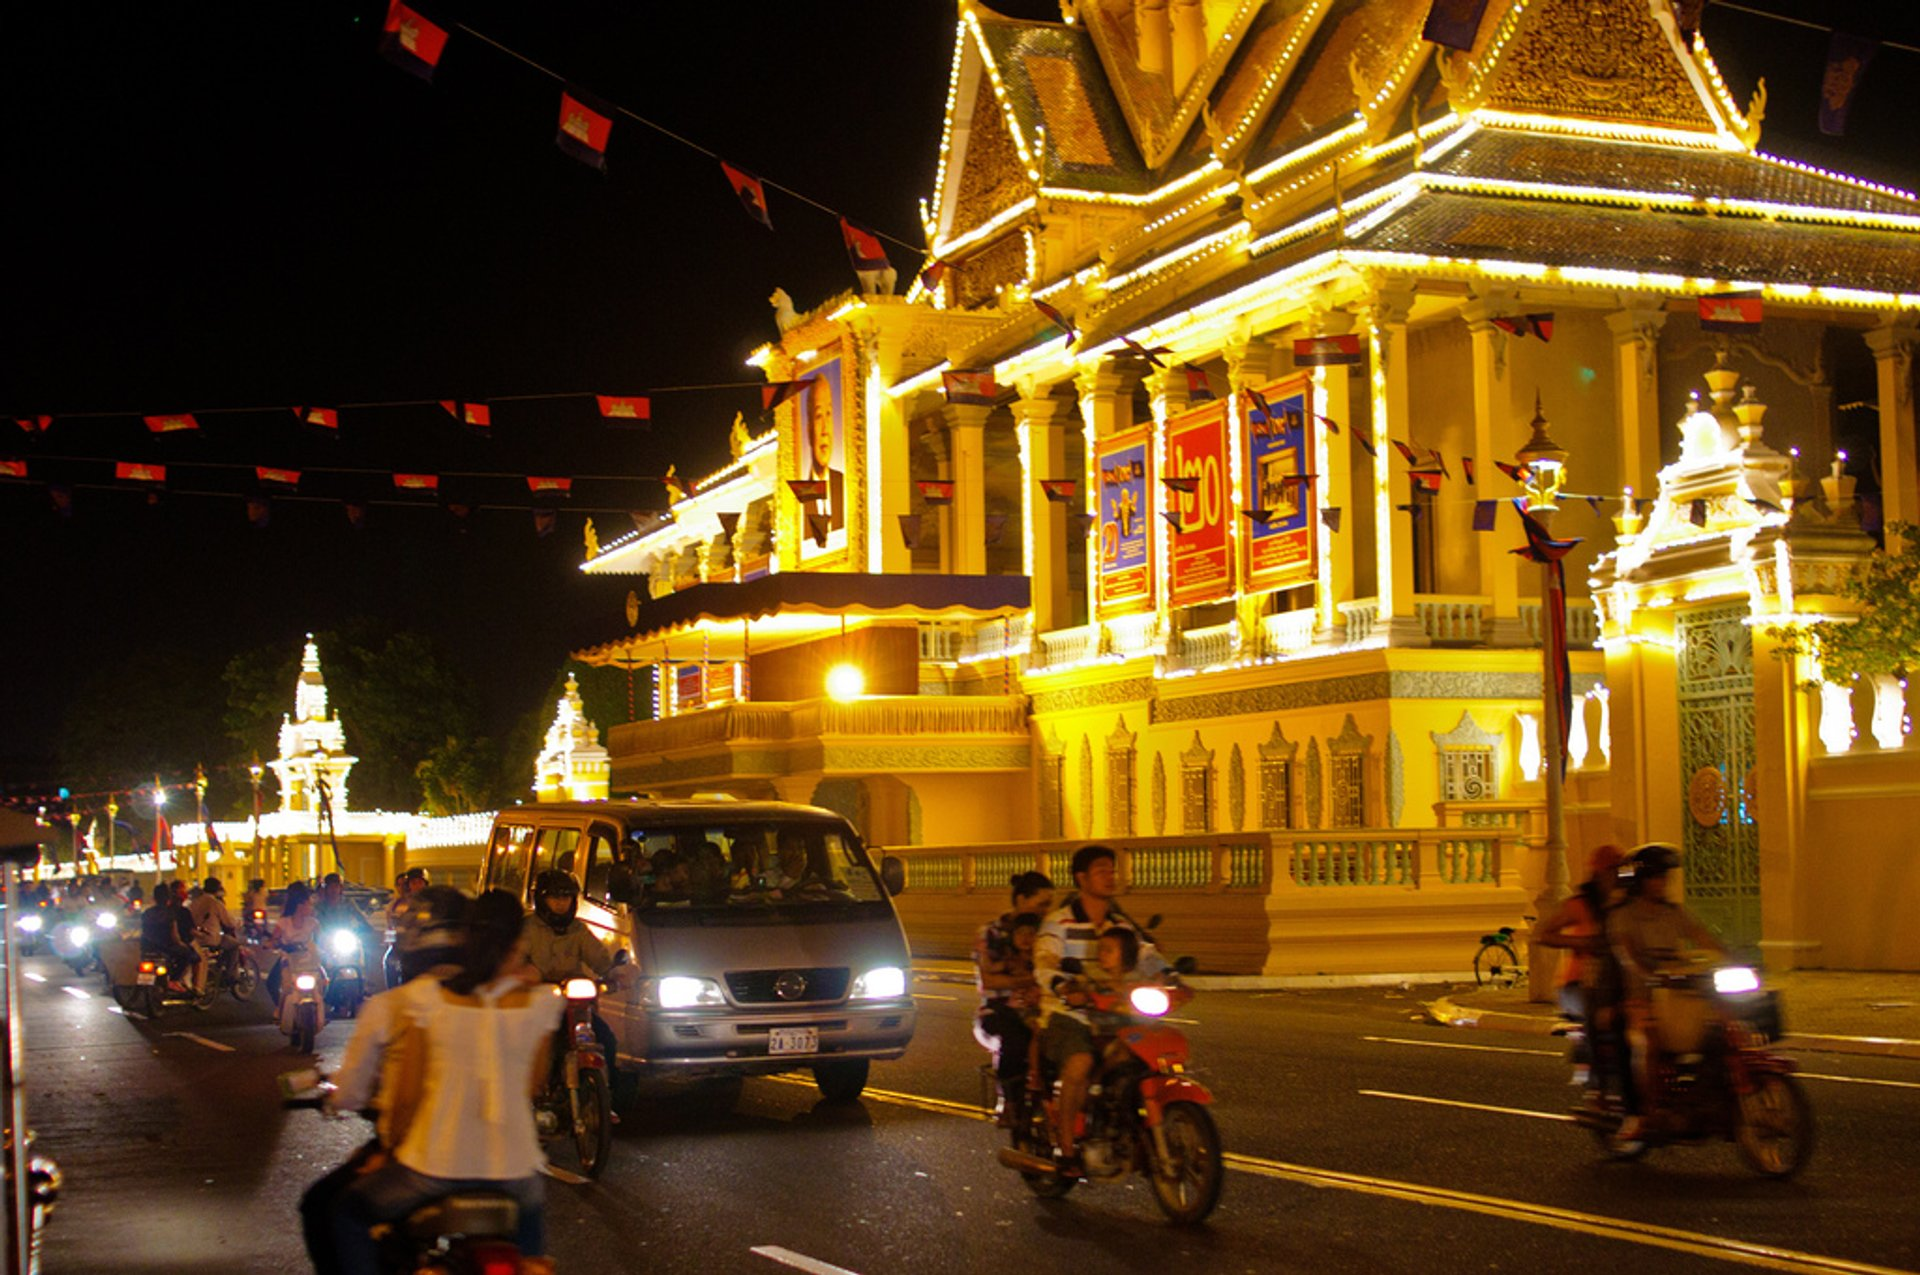 King's Birthday Celebration in Cambodia - Best Season